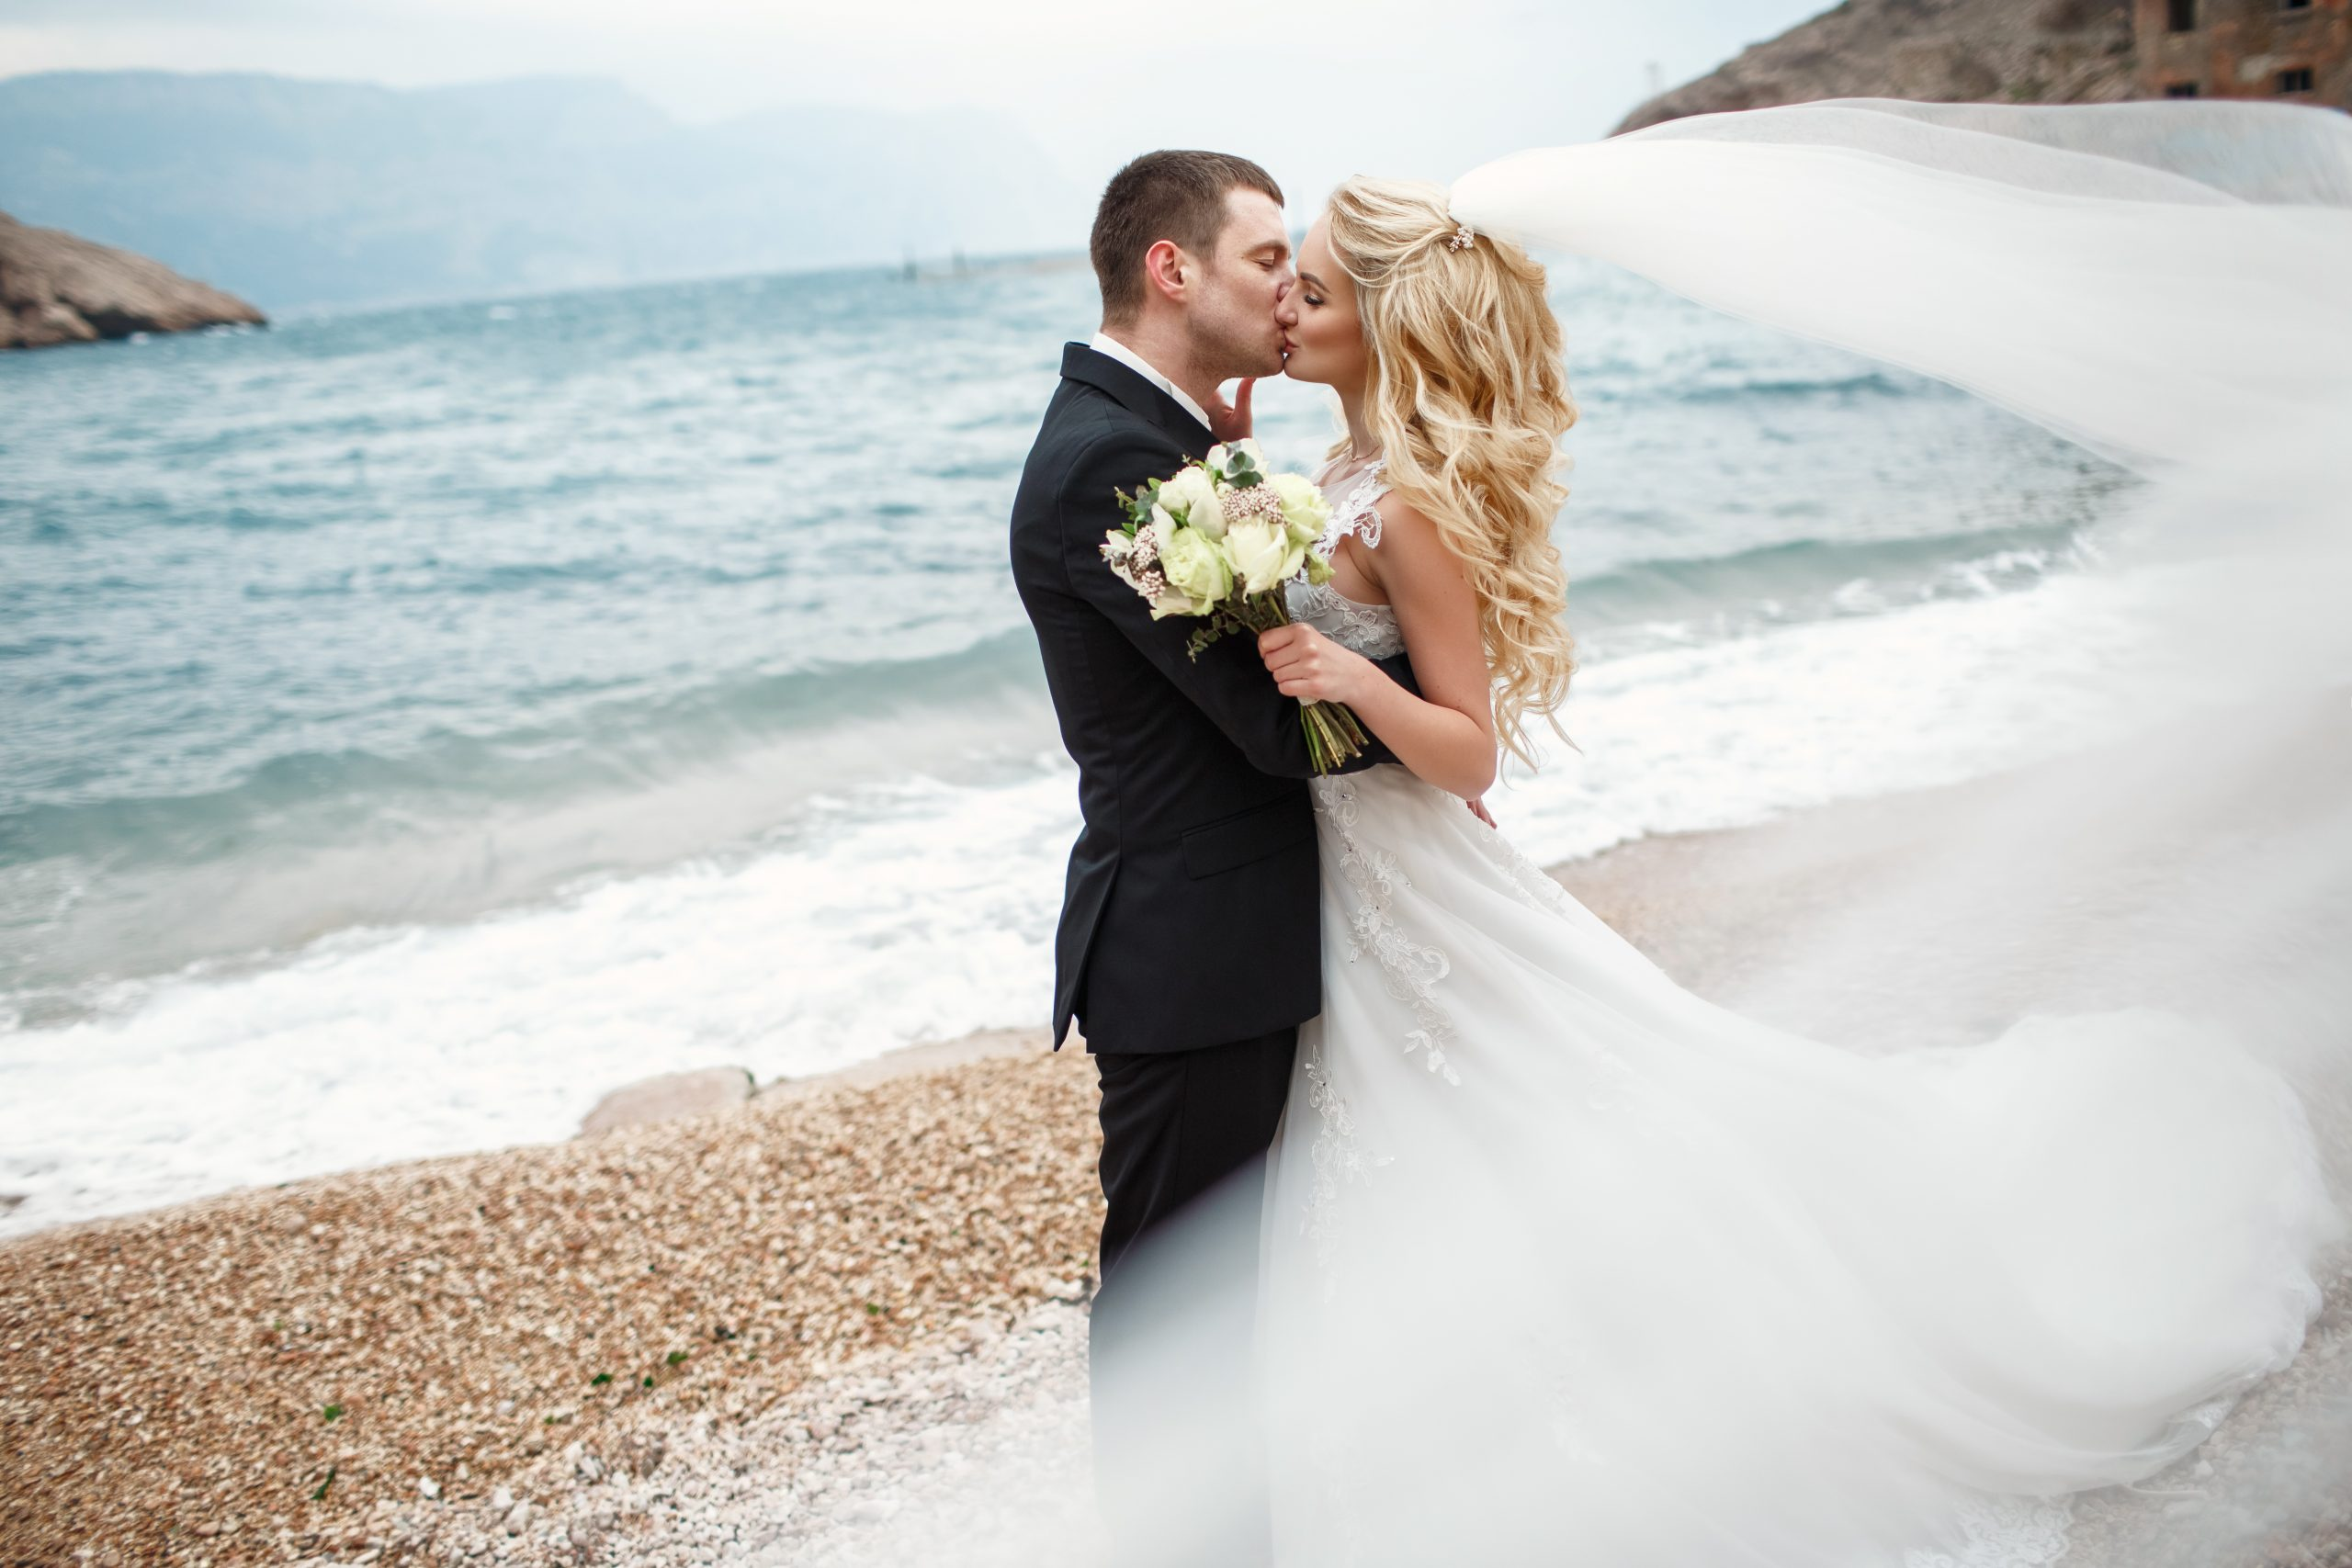 Vie Wedding Packages. Are you preparing for your Big Day? Let us help…